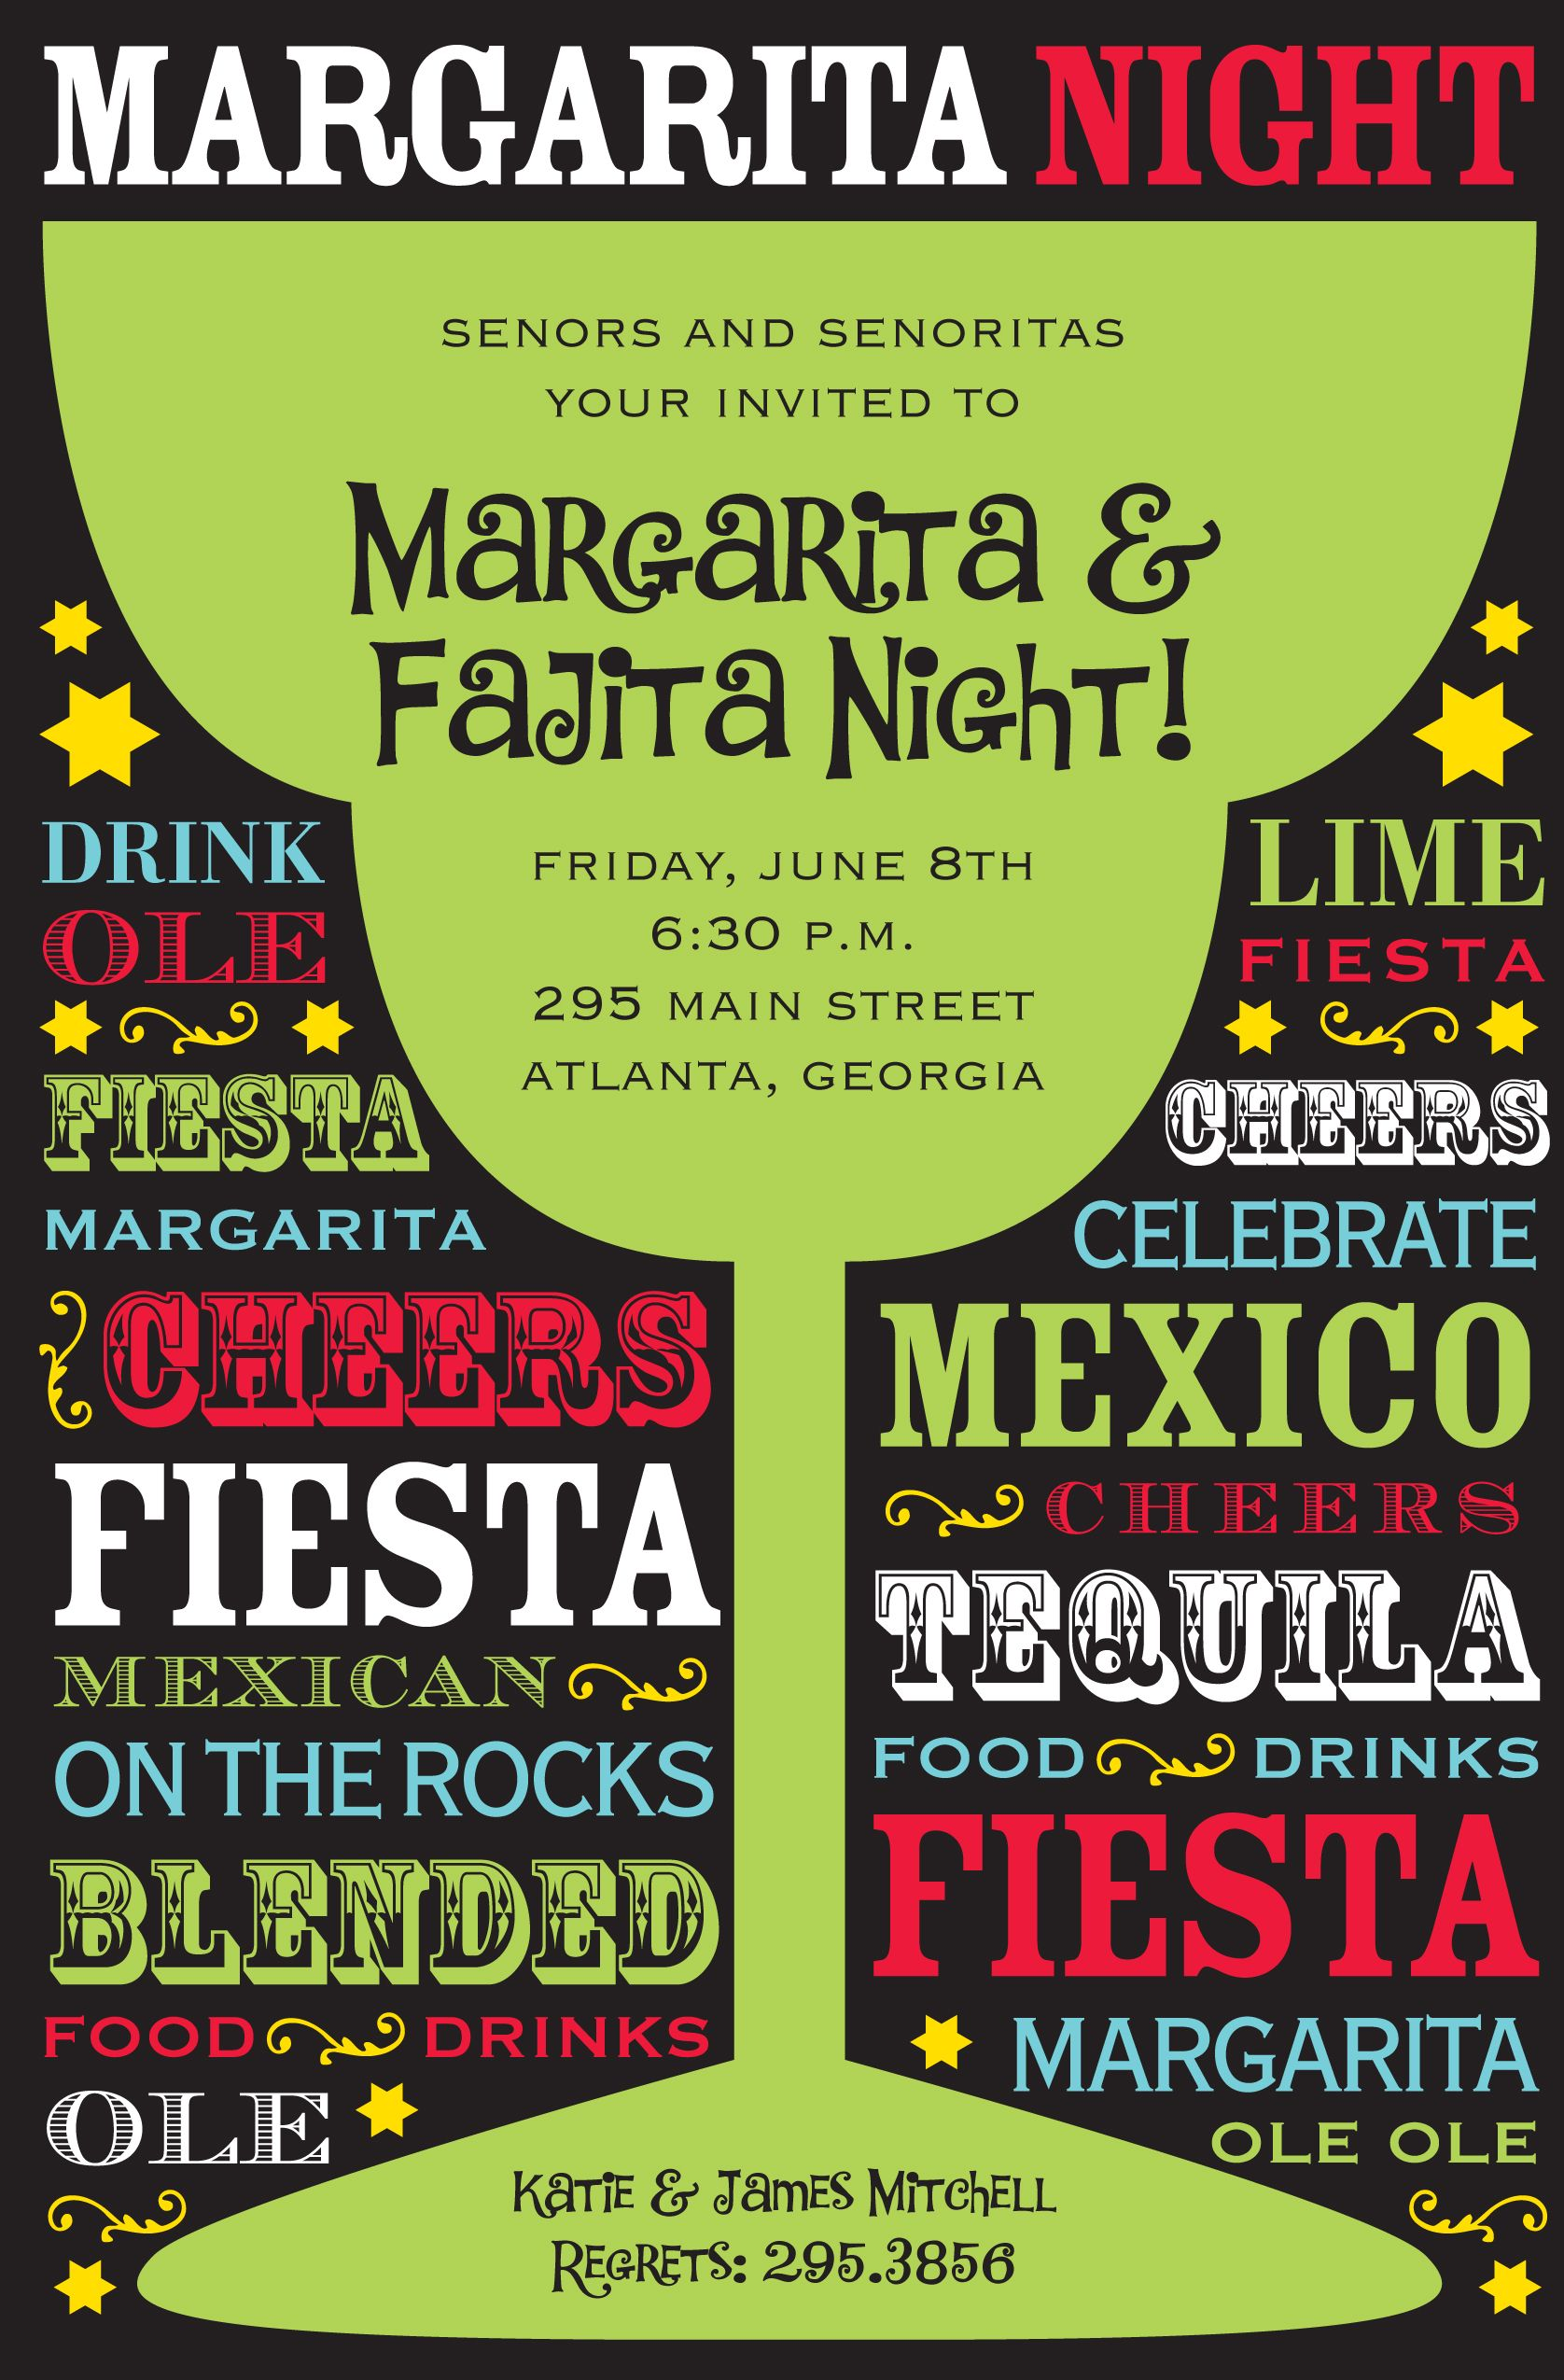 inviting company margarita night invitation margarita fajita inviting company margarita night invitation margarita fajita fiesta birthday party